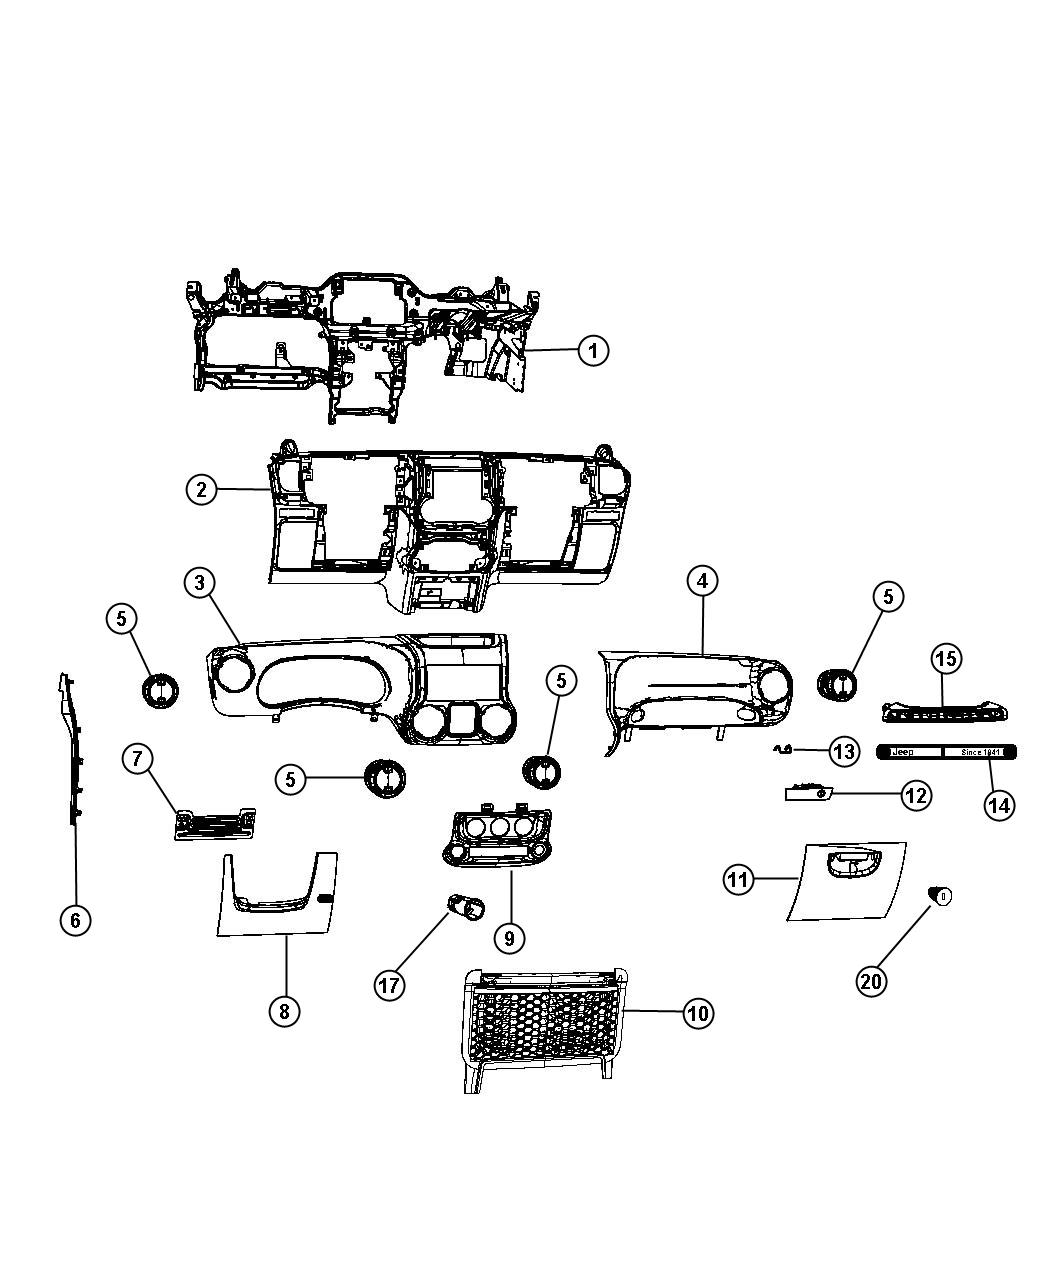 HP PartList also Jeep Wrangler Yj Laser Notched Full Roll Cage Kit together with Mopar Hardware For Jeep Soft Tops as well Tucson Remote Start Wiring Diagram furthermore Parts. on jeep jk dash parts